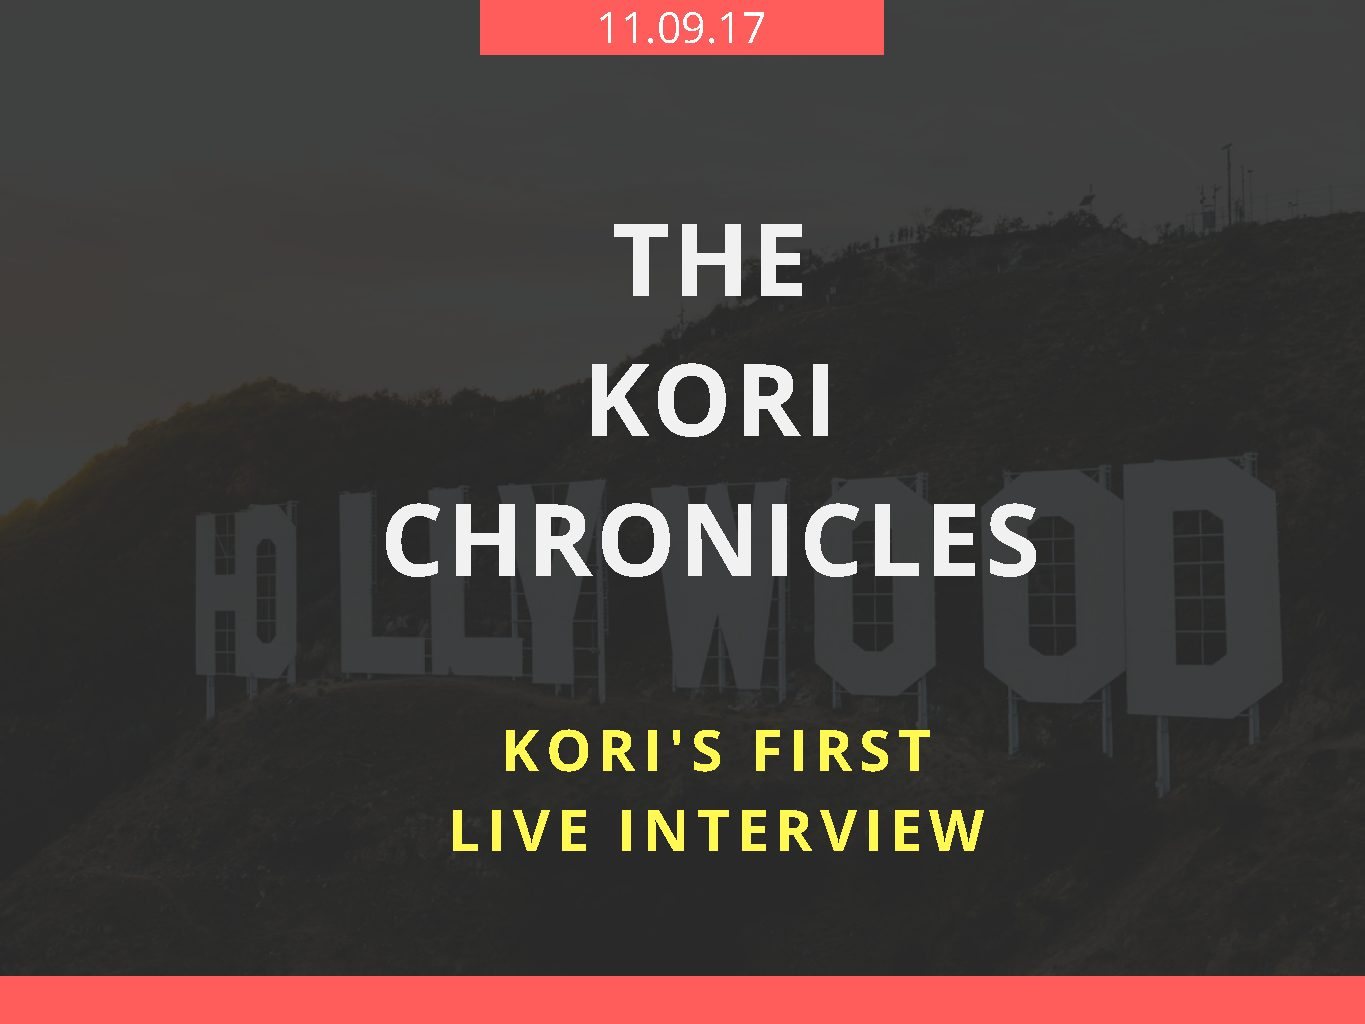 Kori's First Live Interview